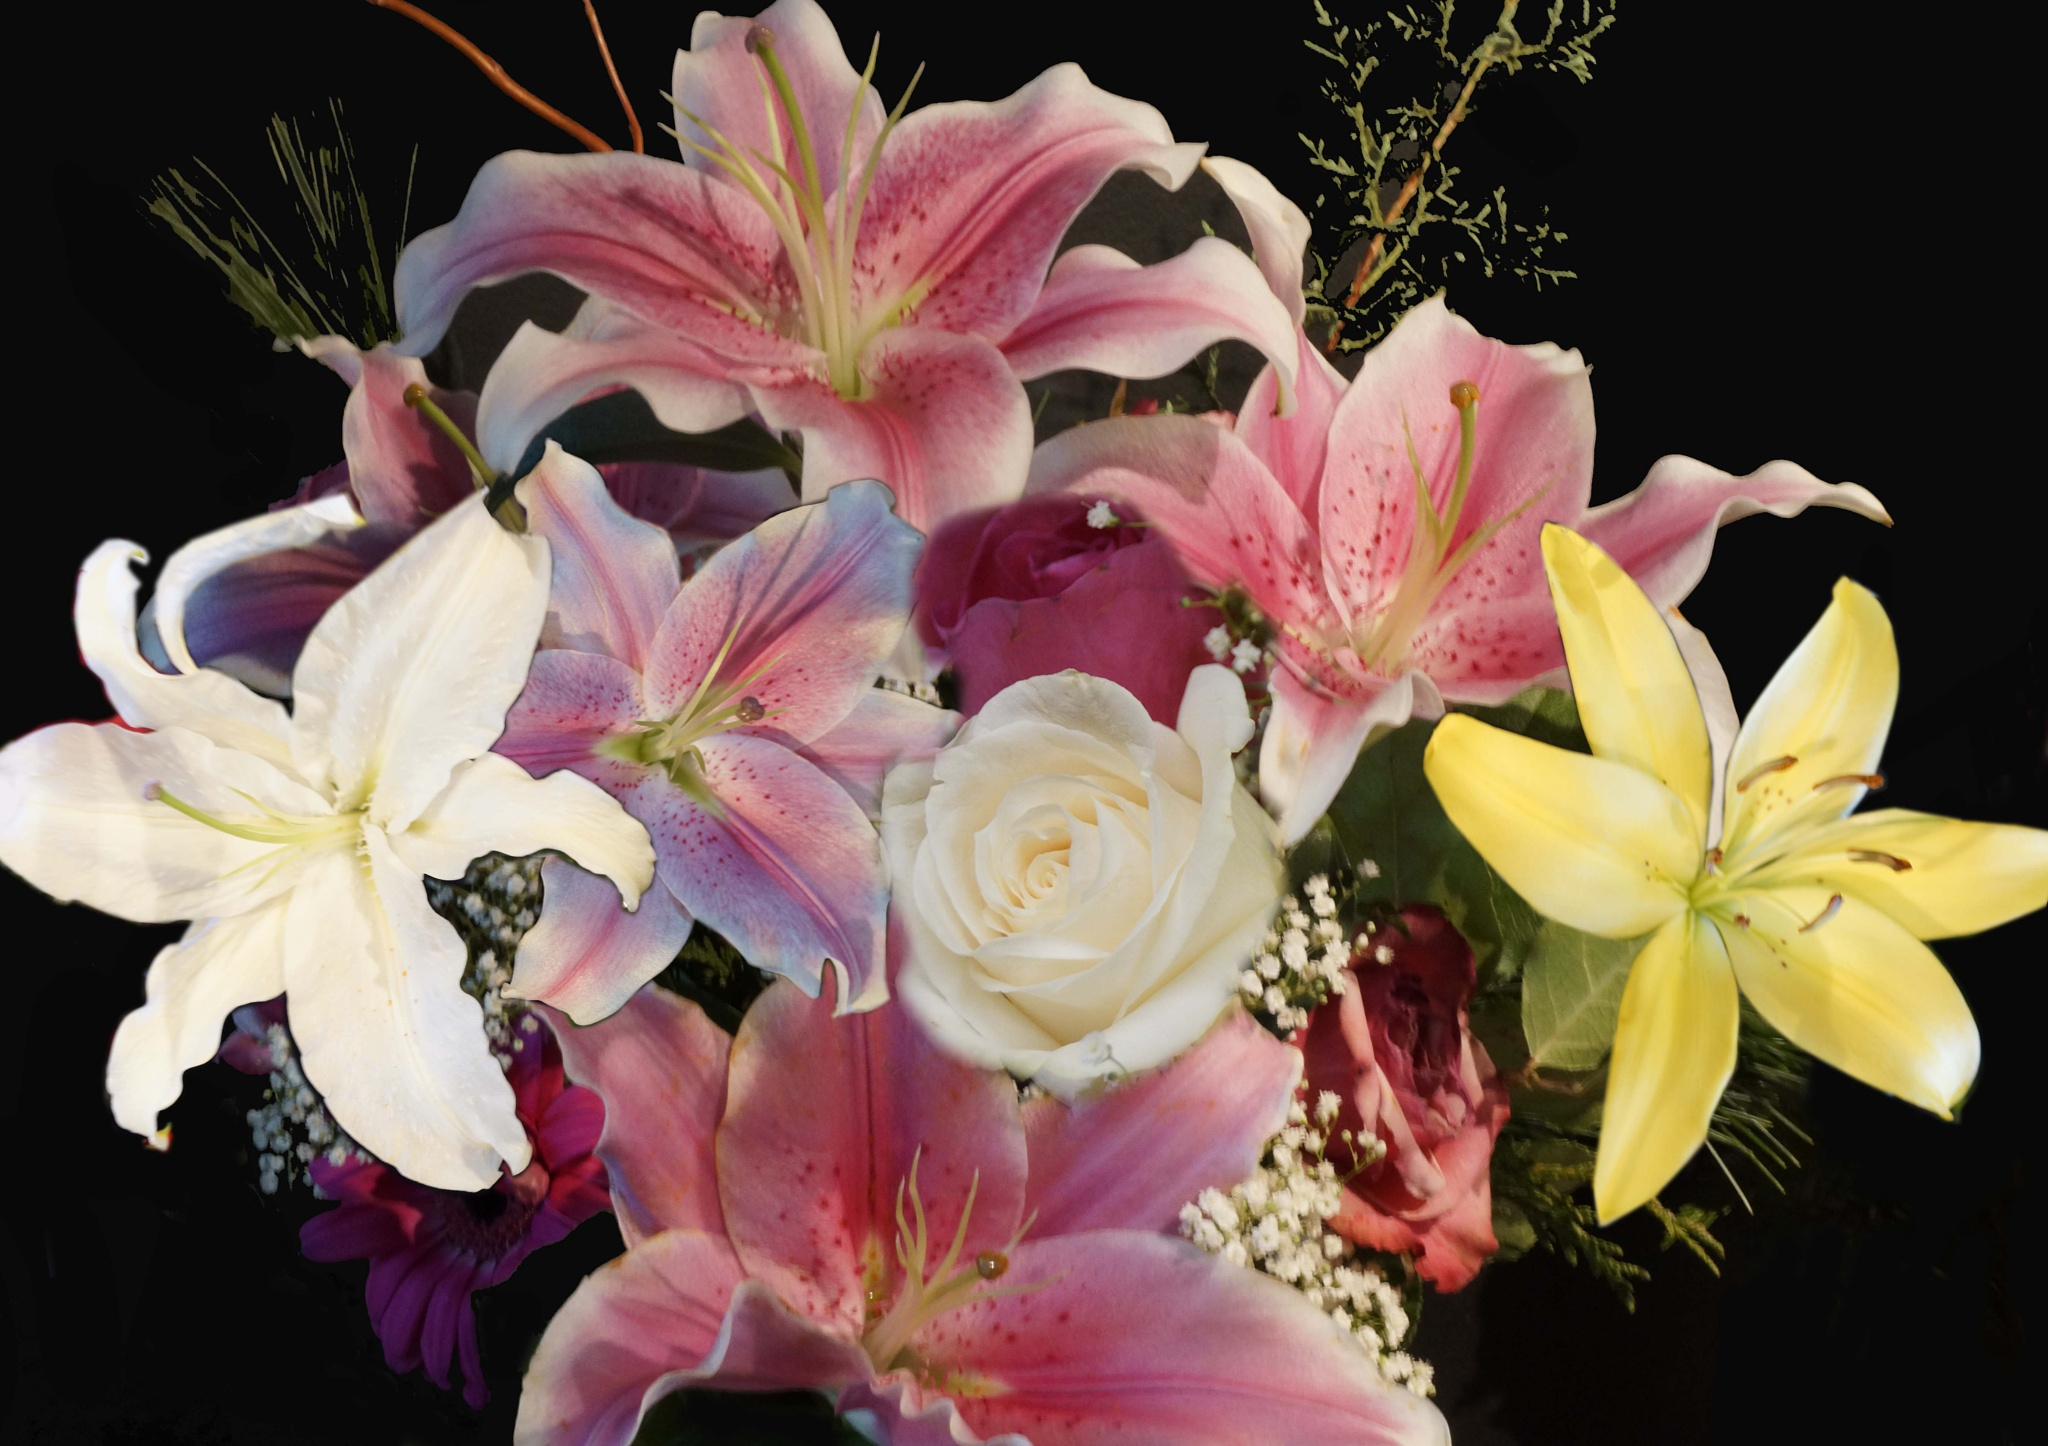 Bouquet by Barry Phillips